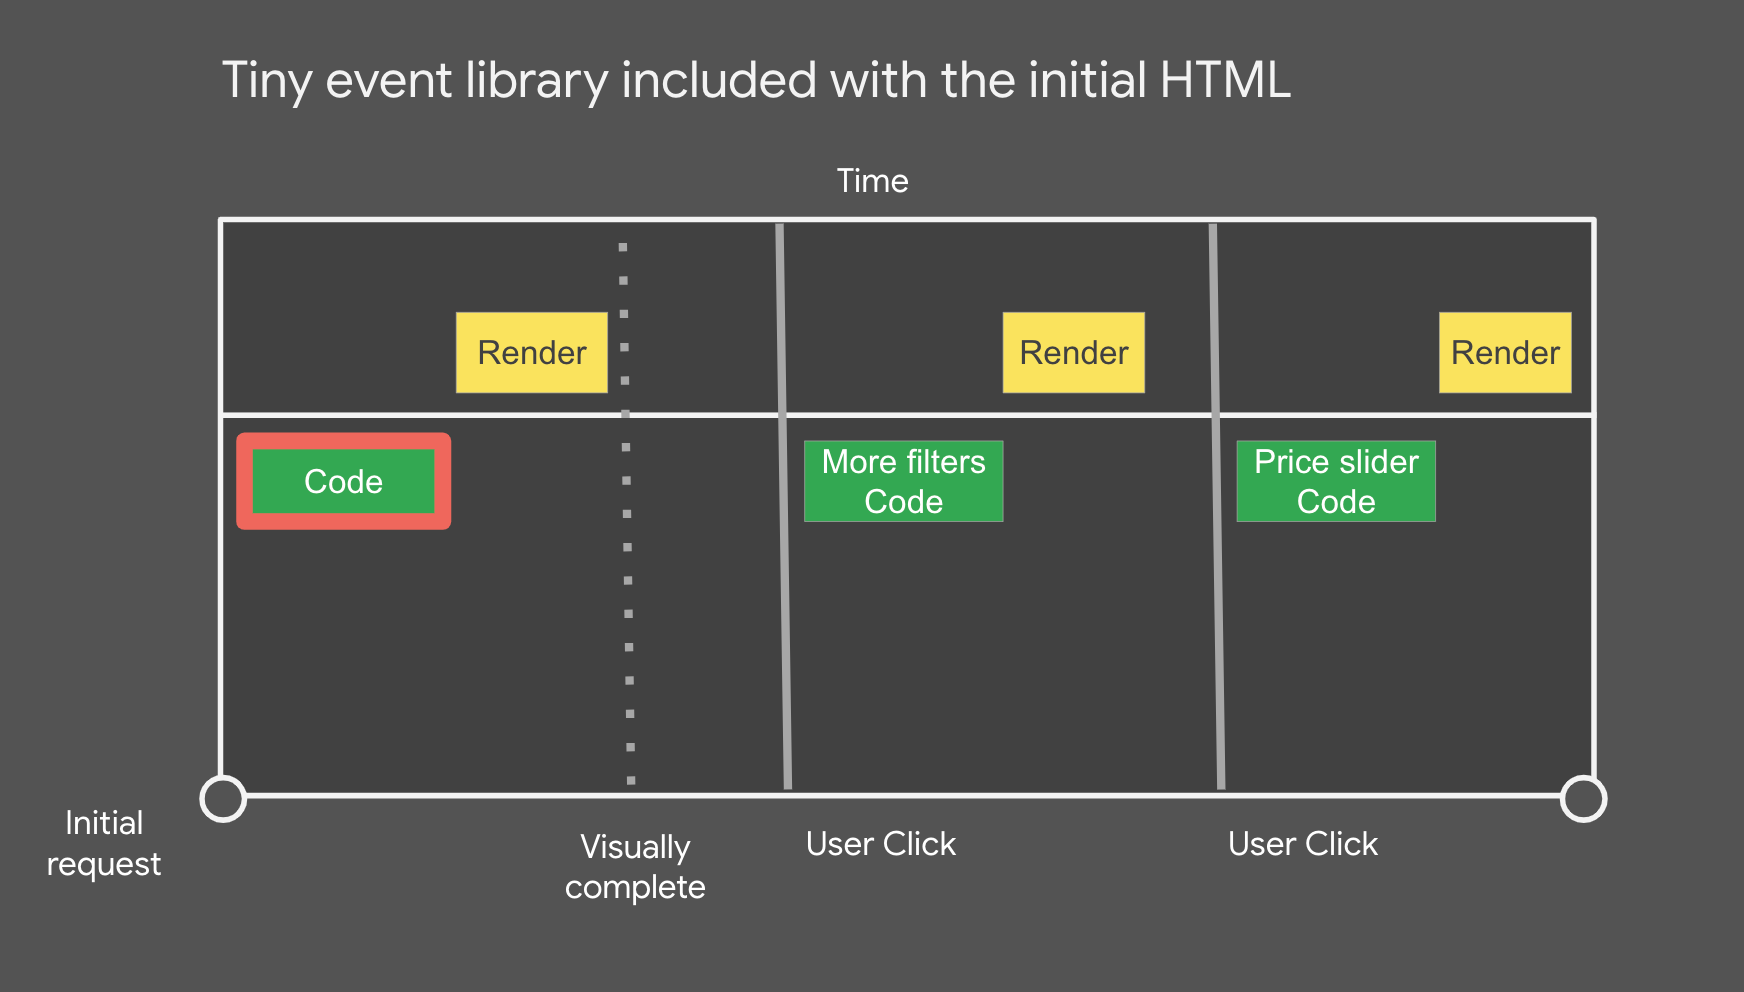 Tiny event library included with the initial HTML